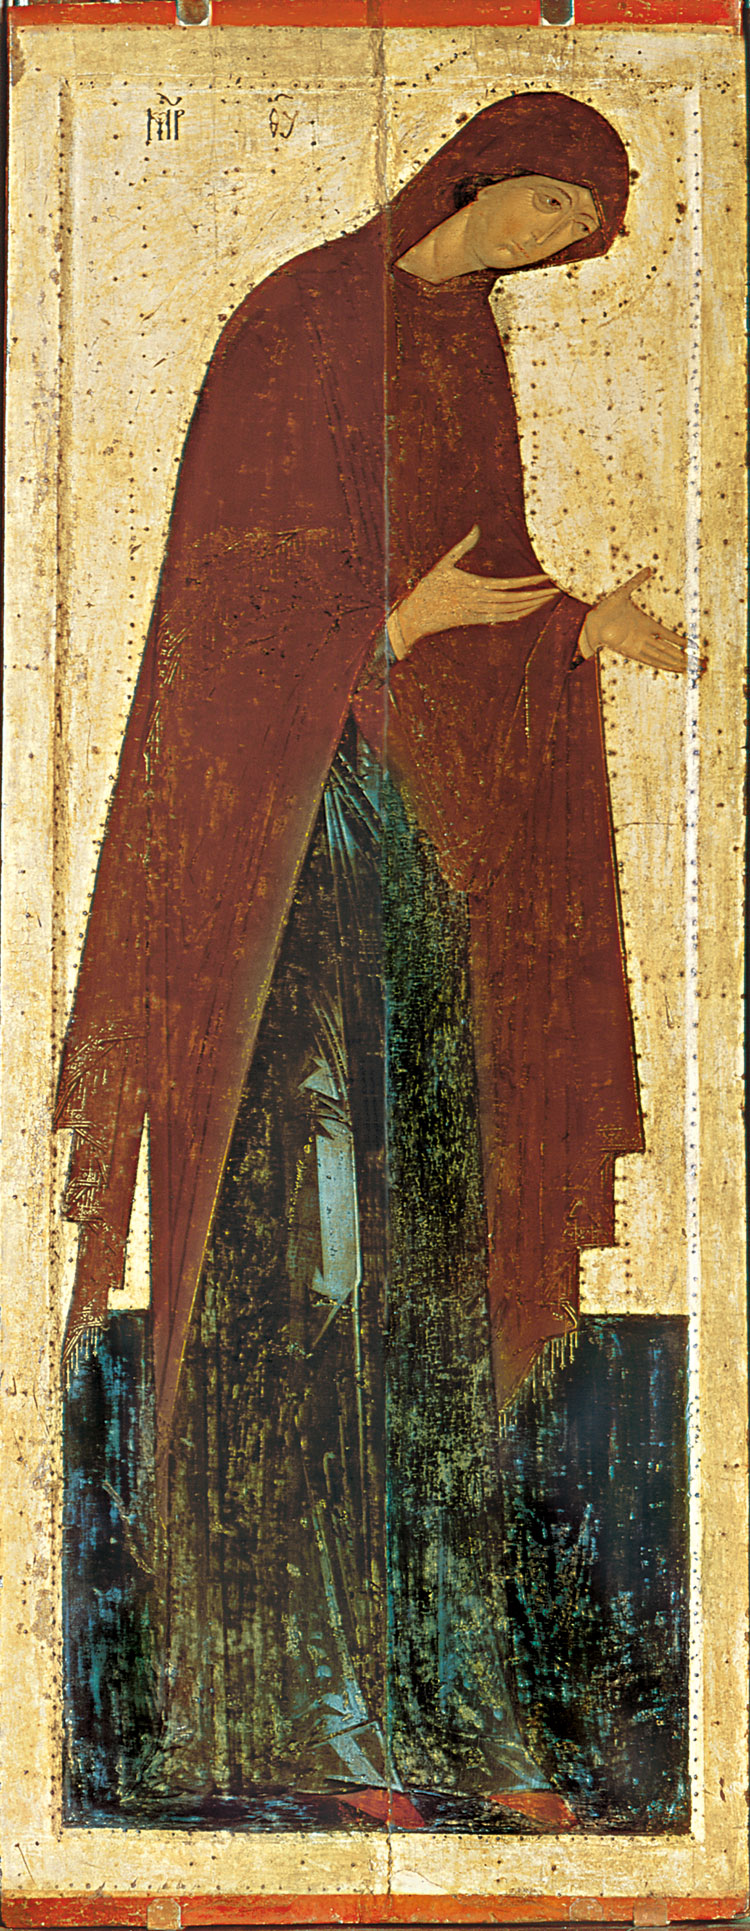 Theotokos. Dionisy and his studio. 1490s or 1502-1503